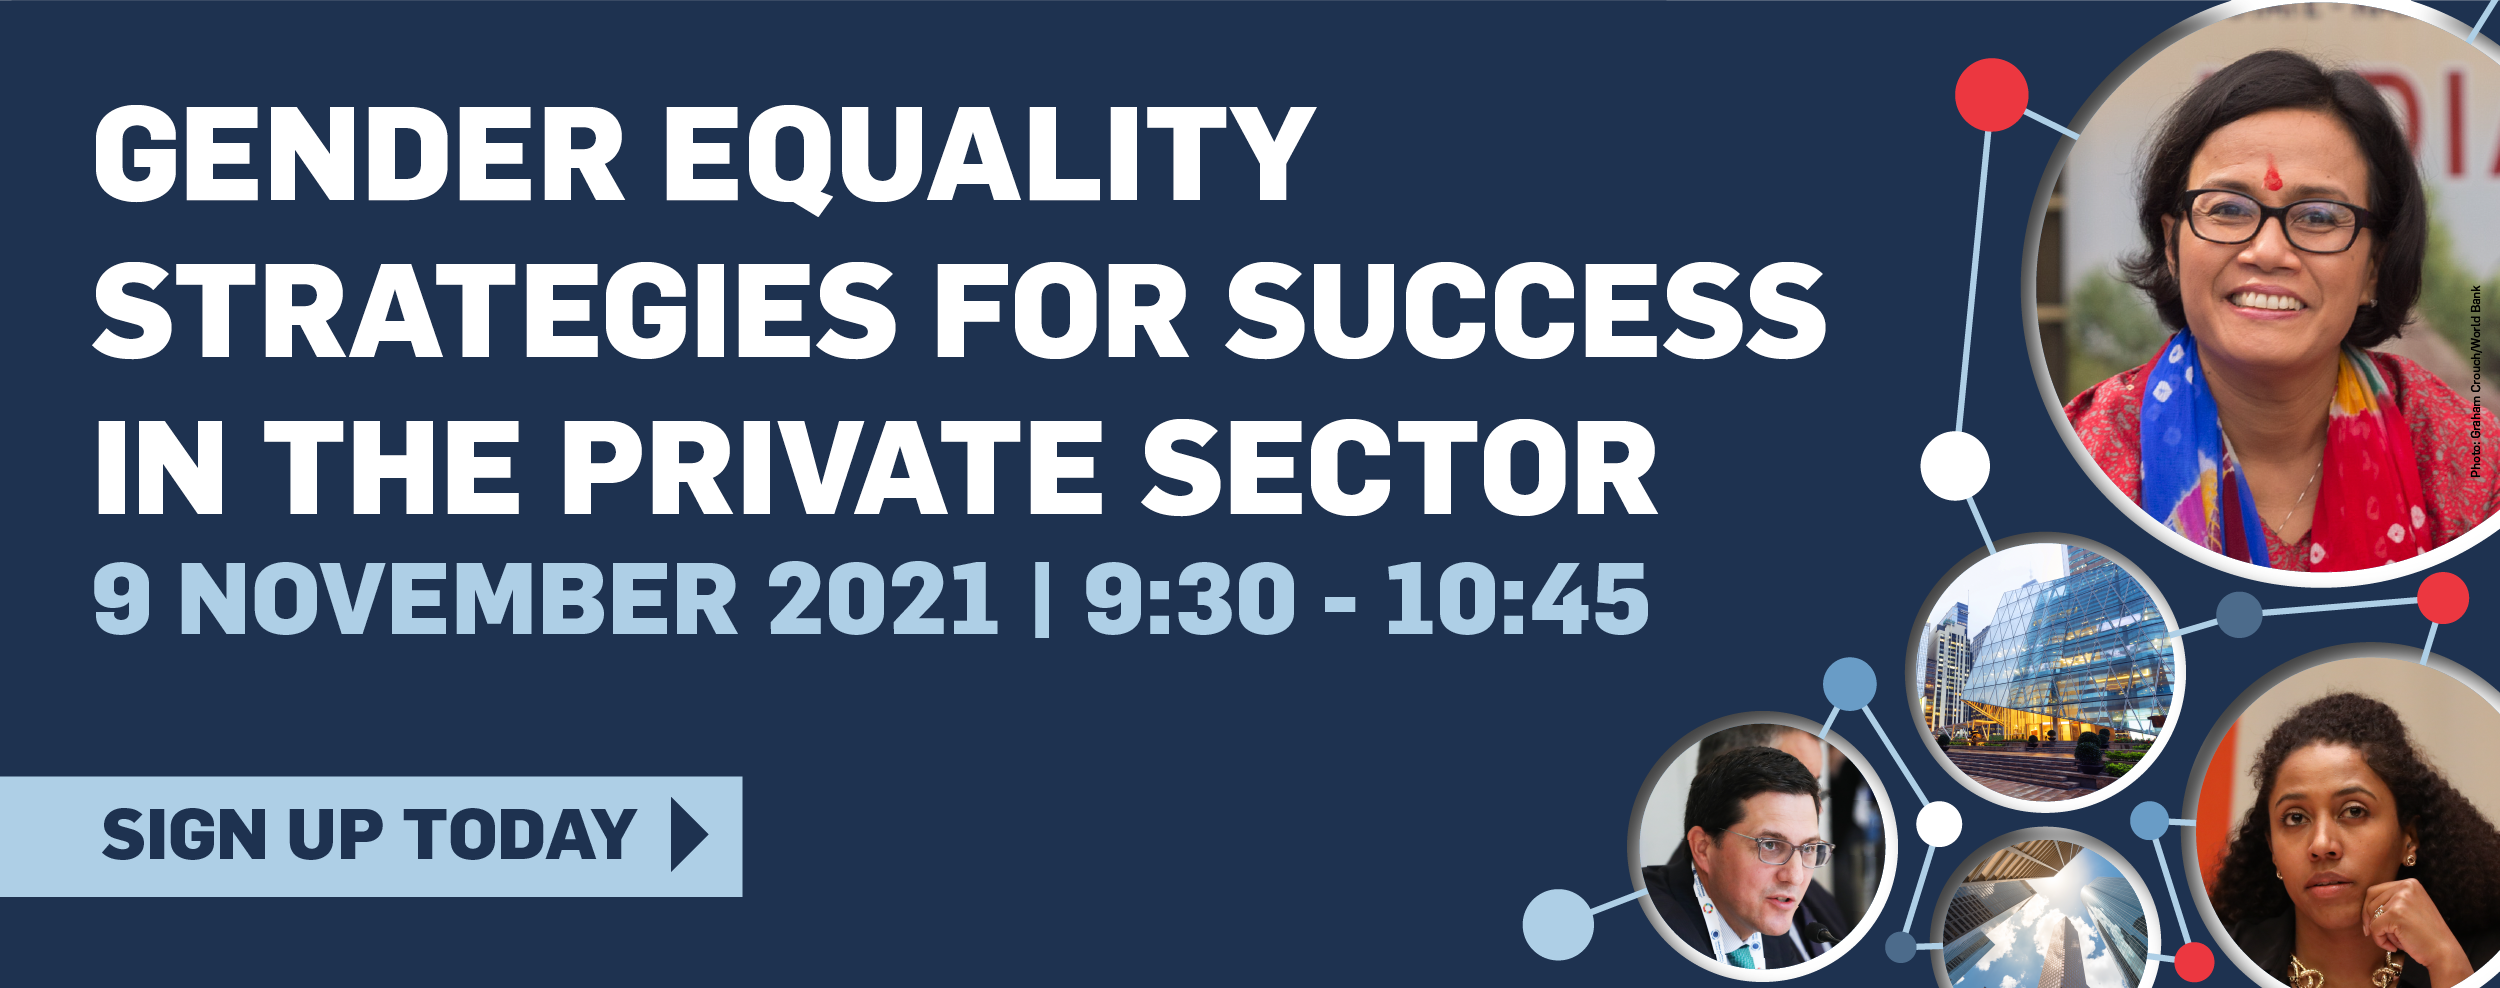 Webinar 'Gender Equality Strategies for Success in the Private Sector'